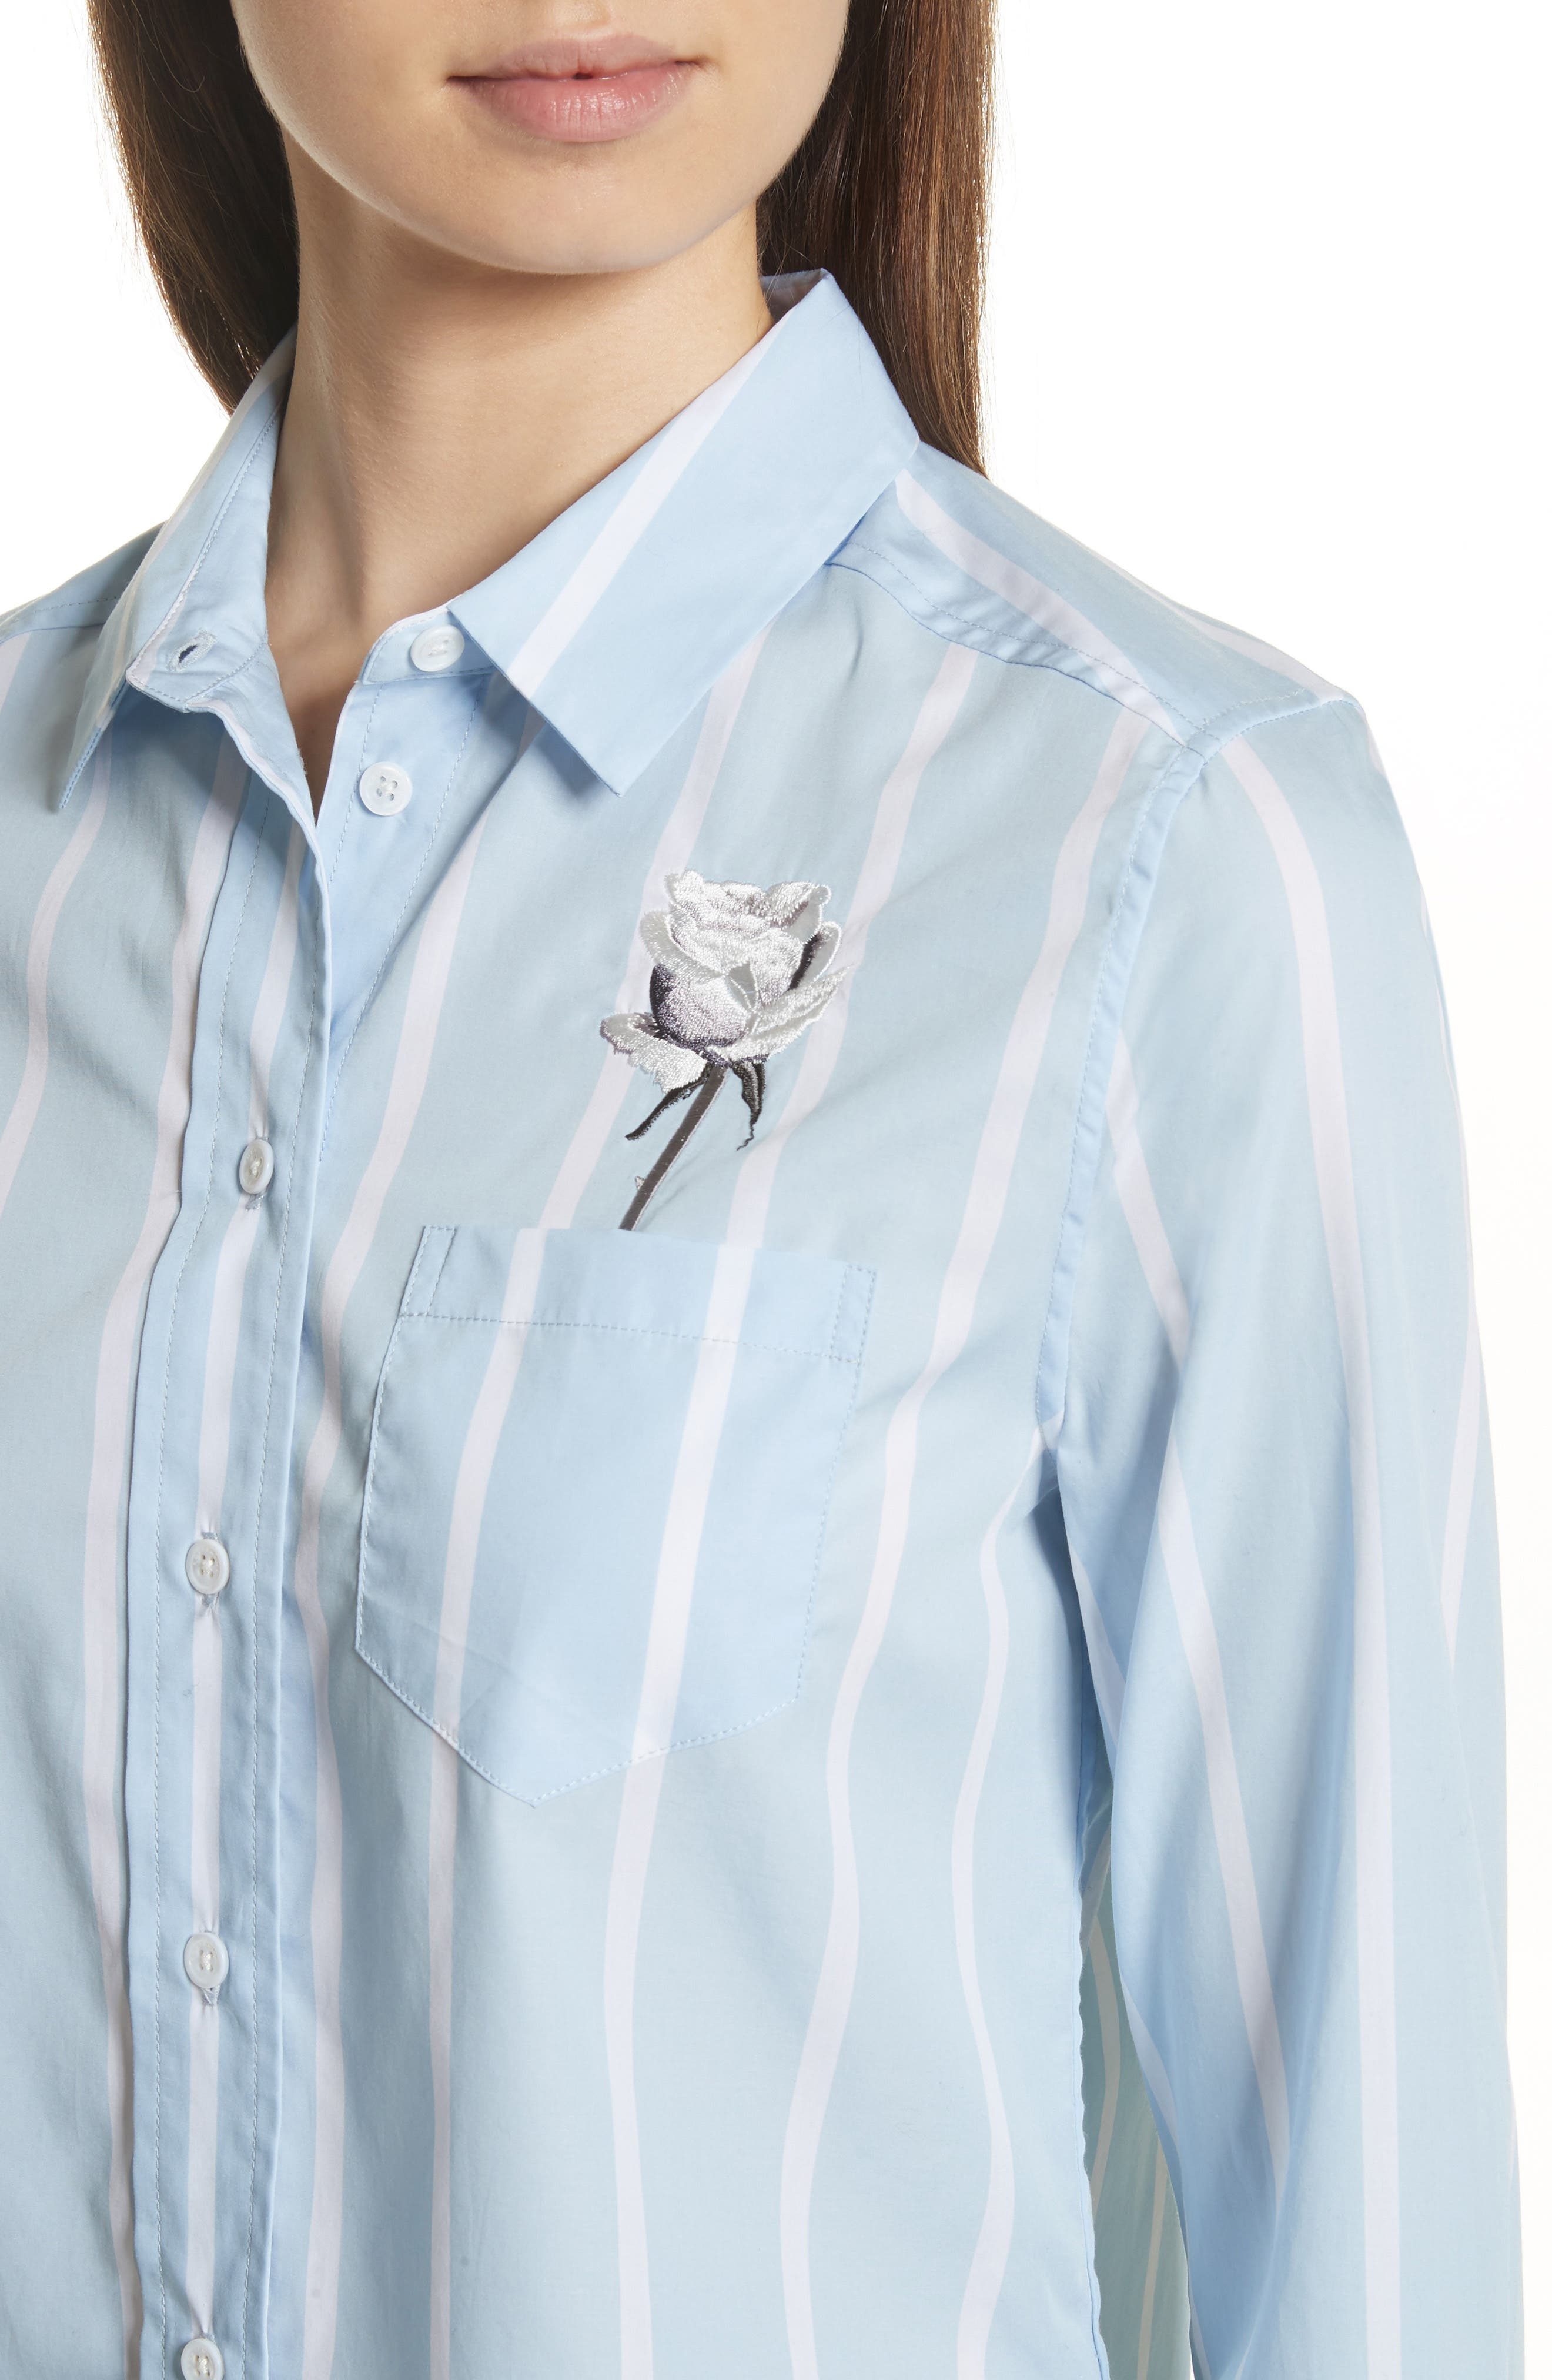 Huntley Embroidered Stripe Cotton Shirt,                             Alternate thumbnail 4, color,                             498